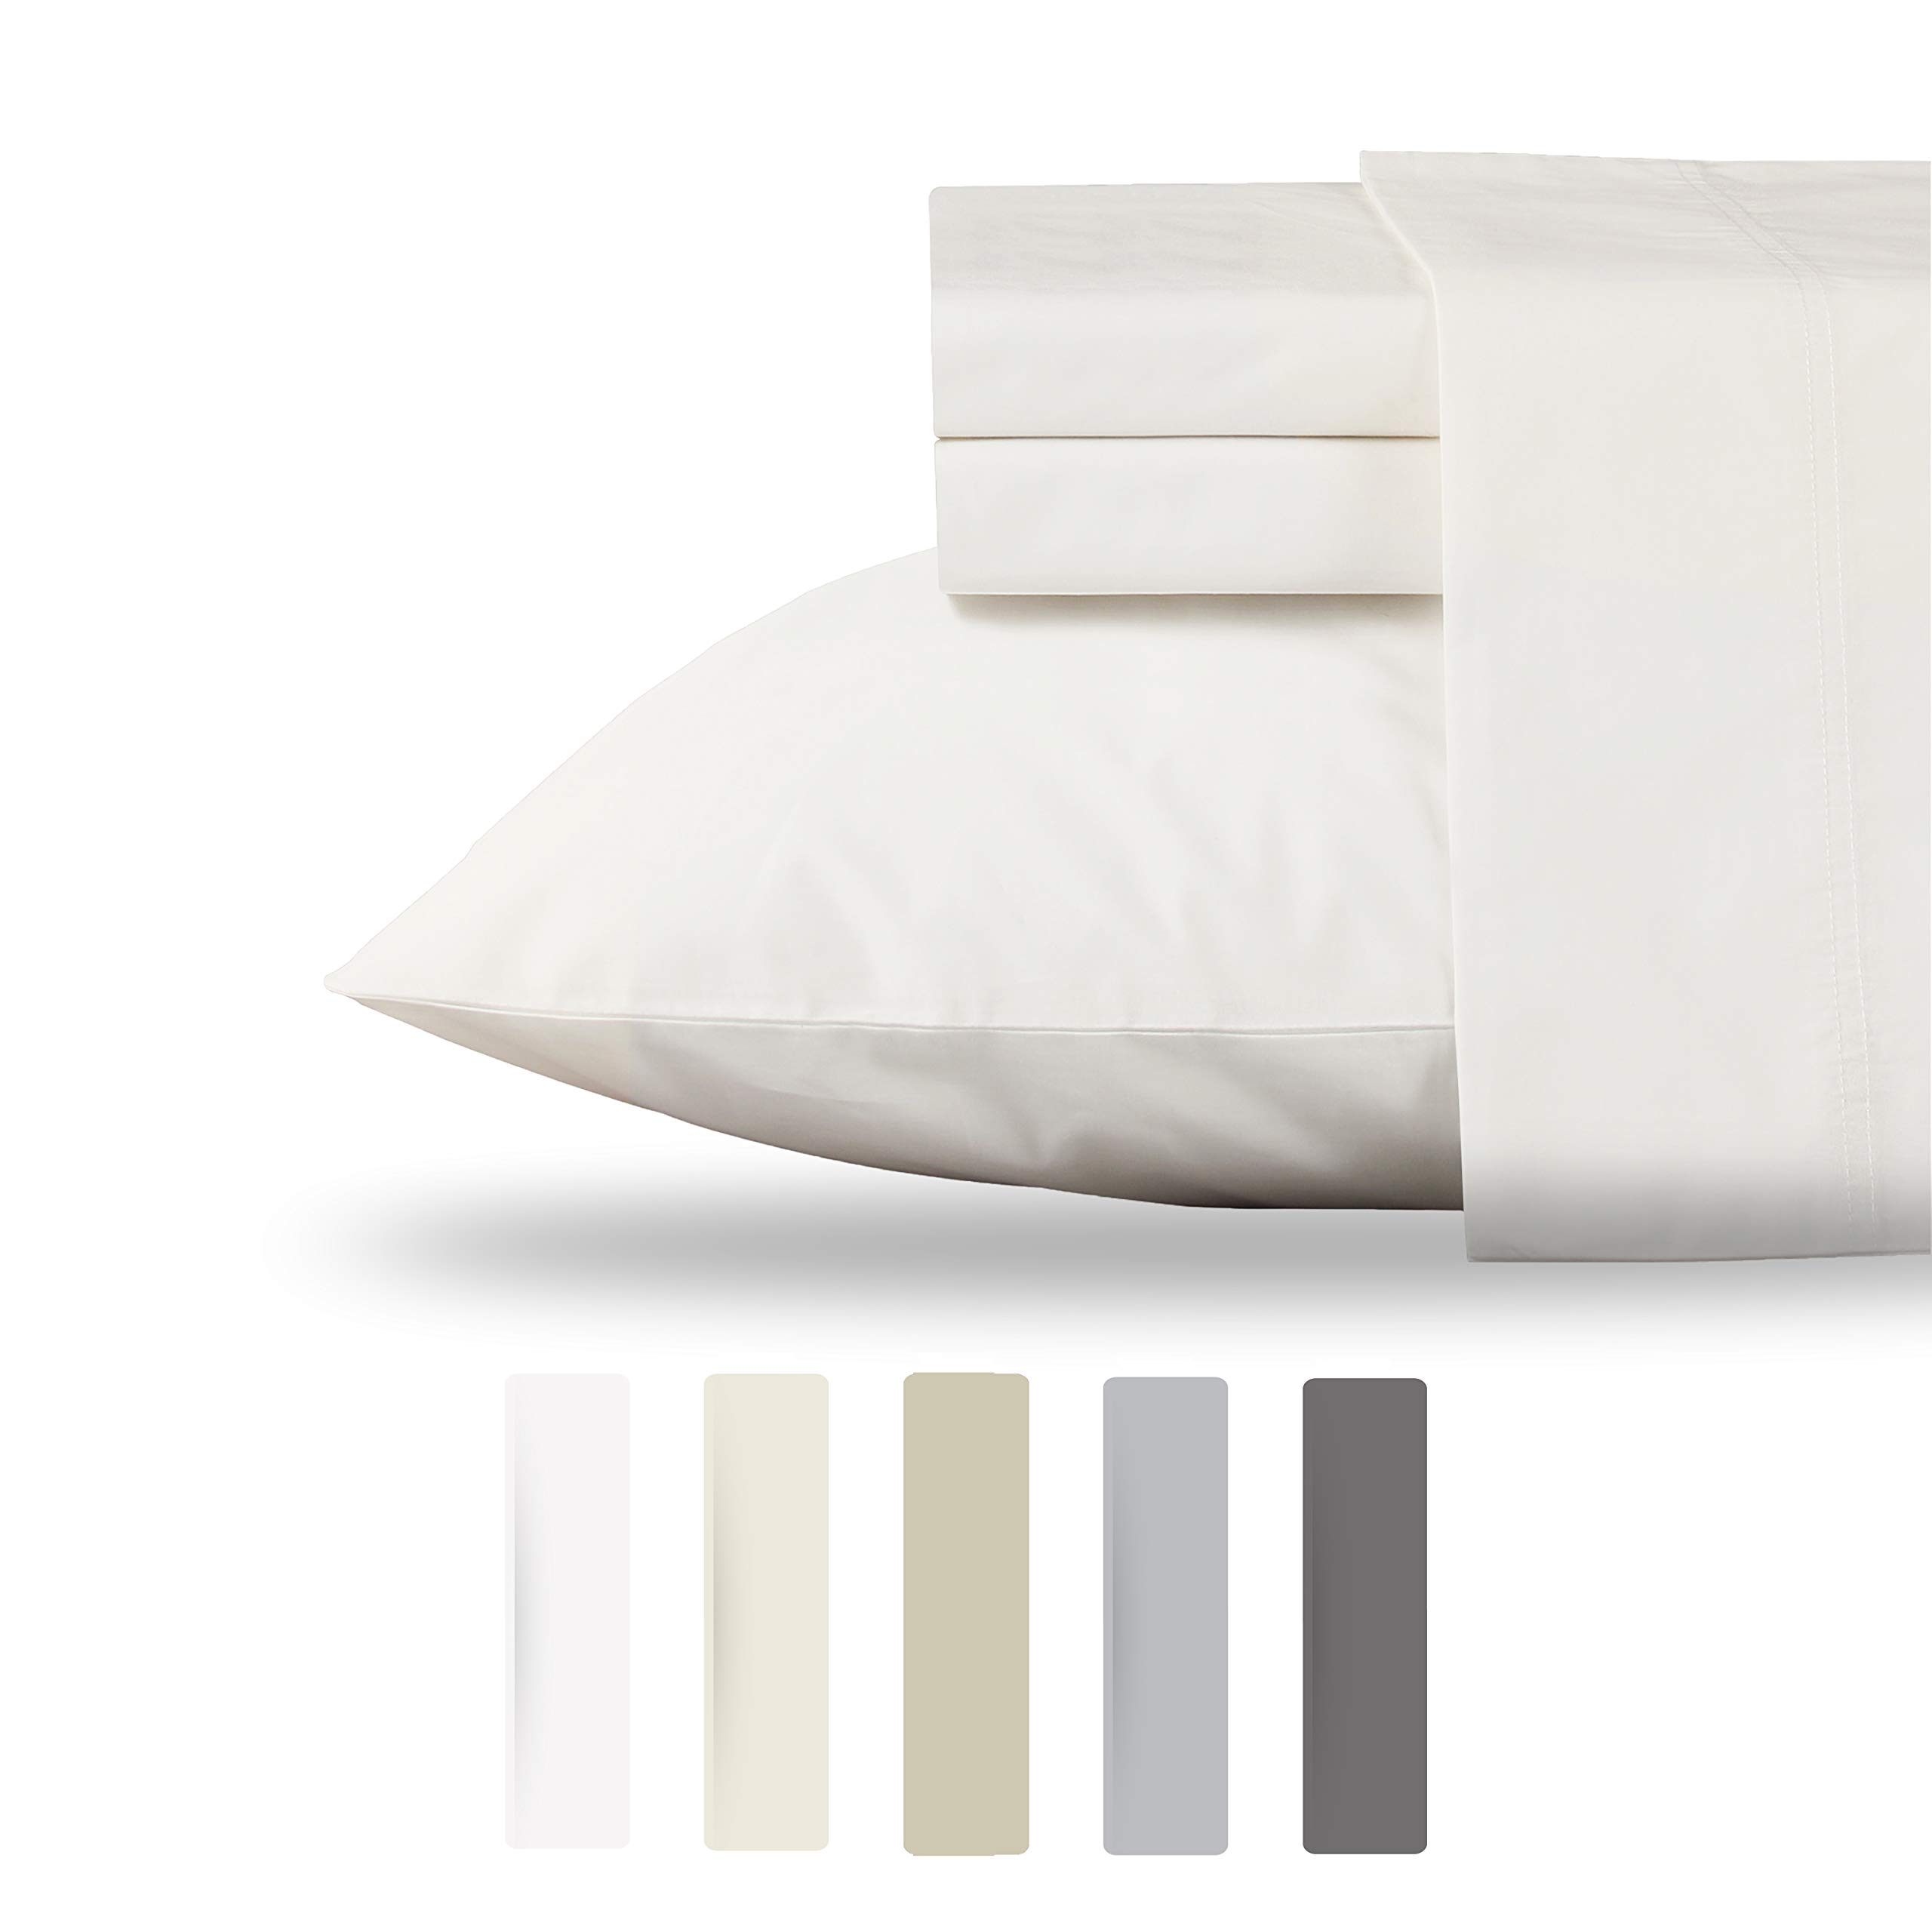 California Design Den 100% Organic Cotton Sheet Set - Crisp and Cooling Percale Weave, Eco-Friendly 3 Piece Bedding, Deep Pocket with All-Around Elastic (Twin, Natural Ivory)